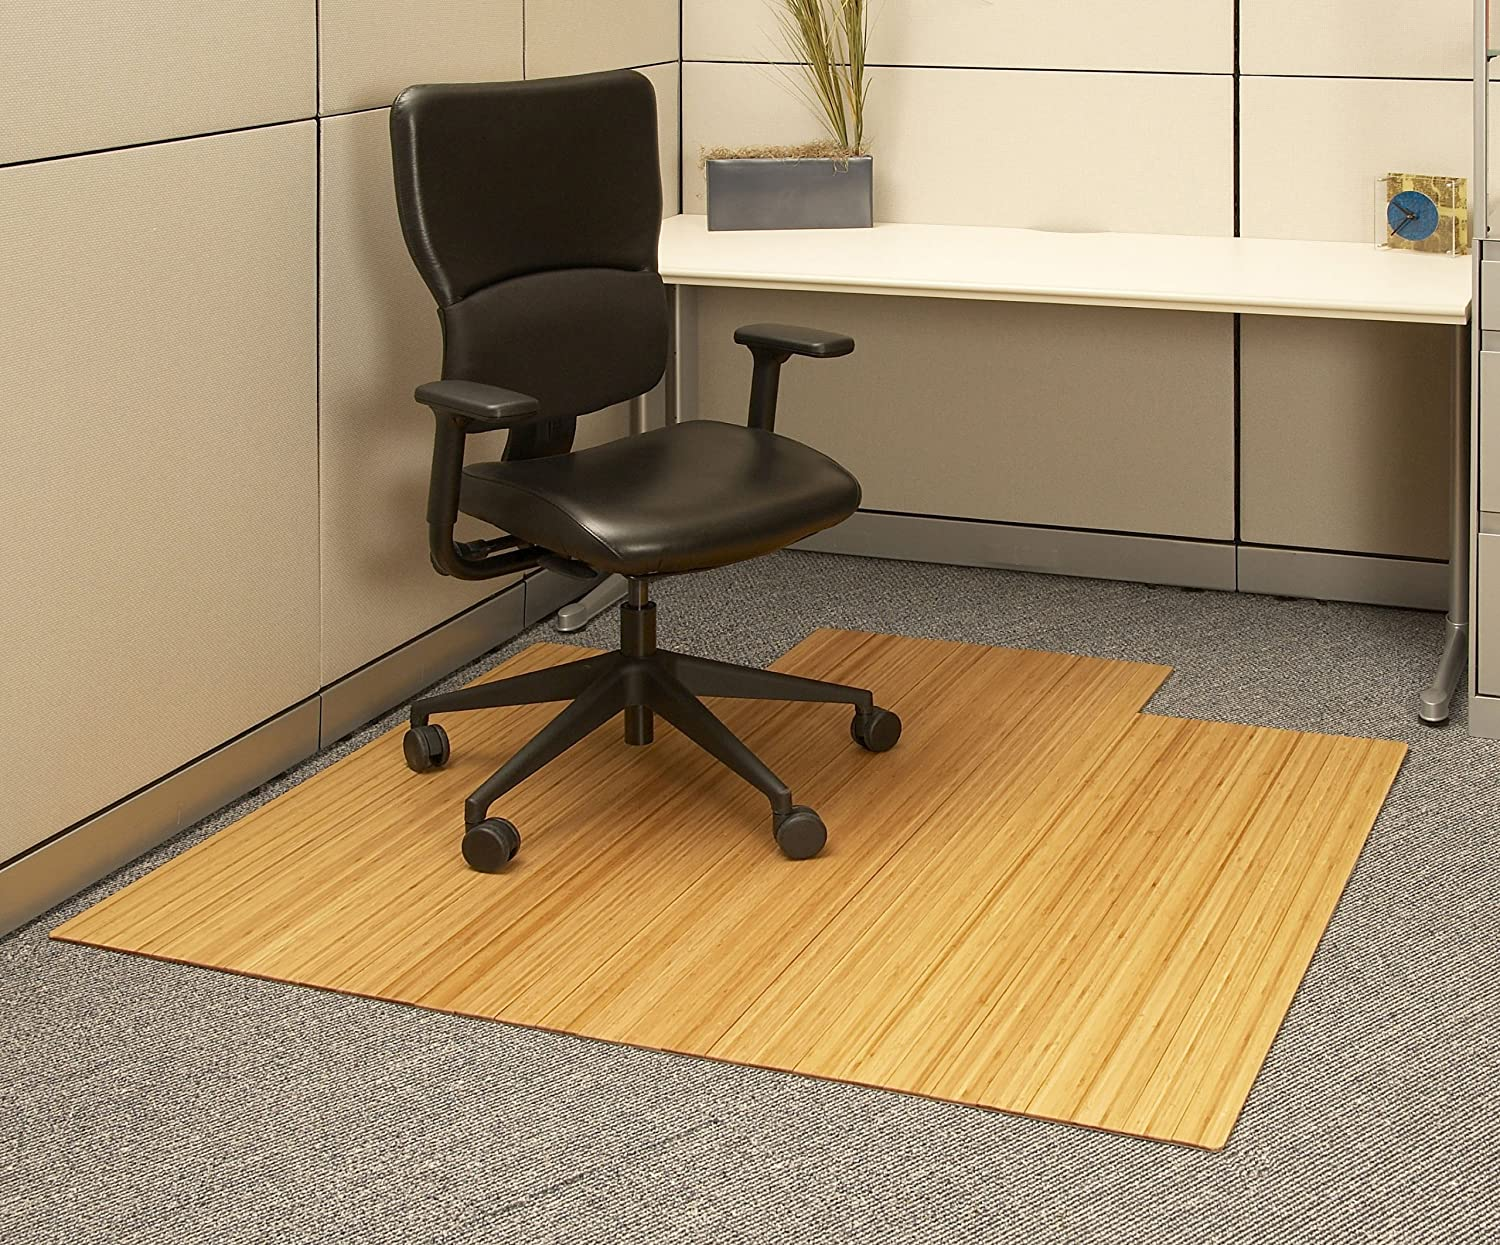 category chair fatigue accessories static chairs floor office mat sych online mats large products bamboo anti floors